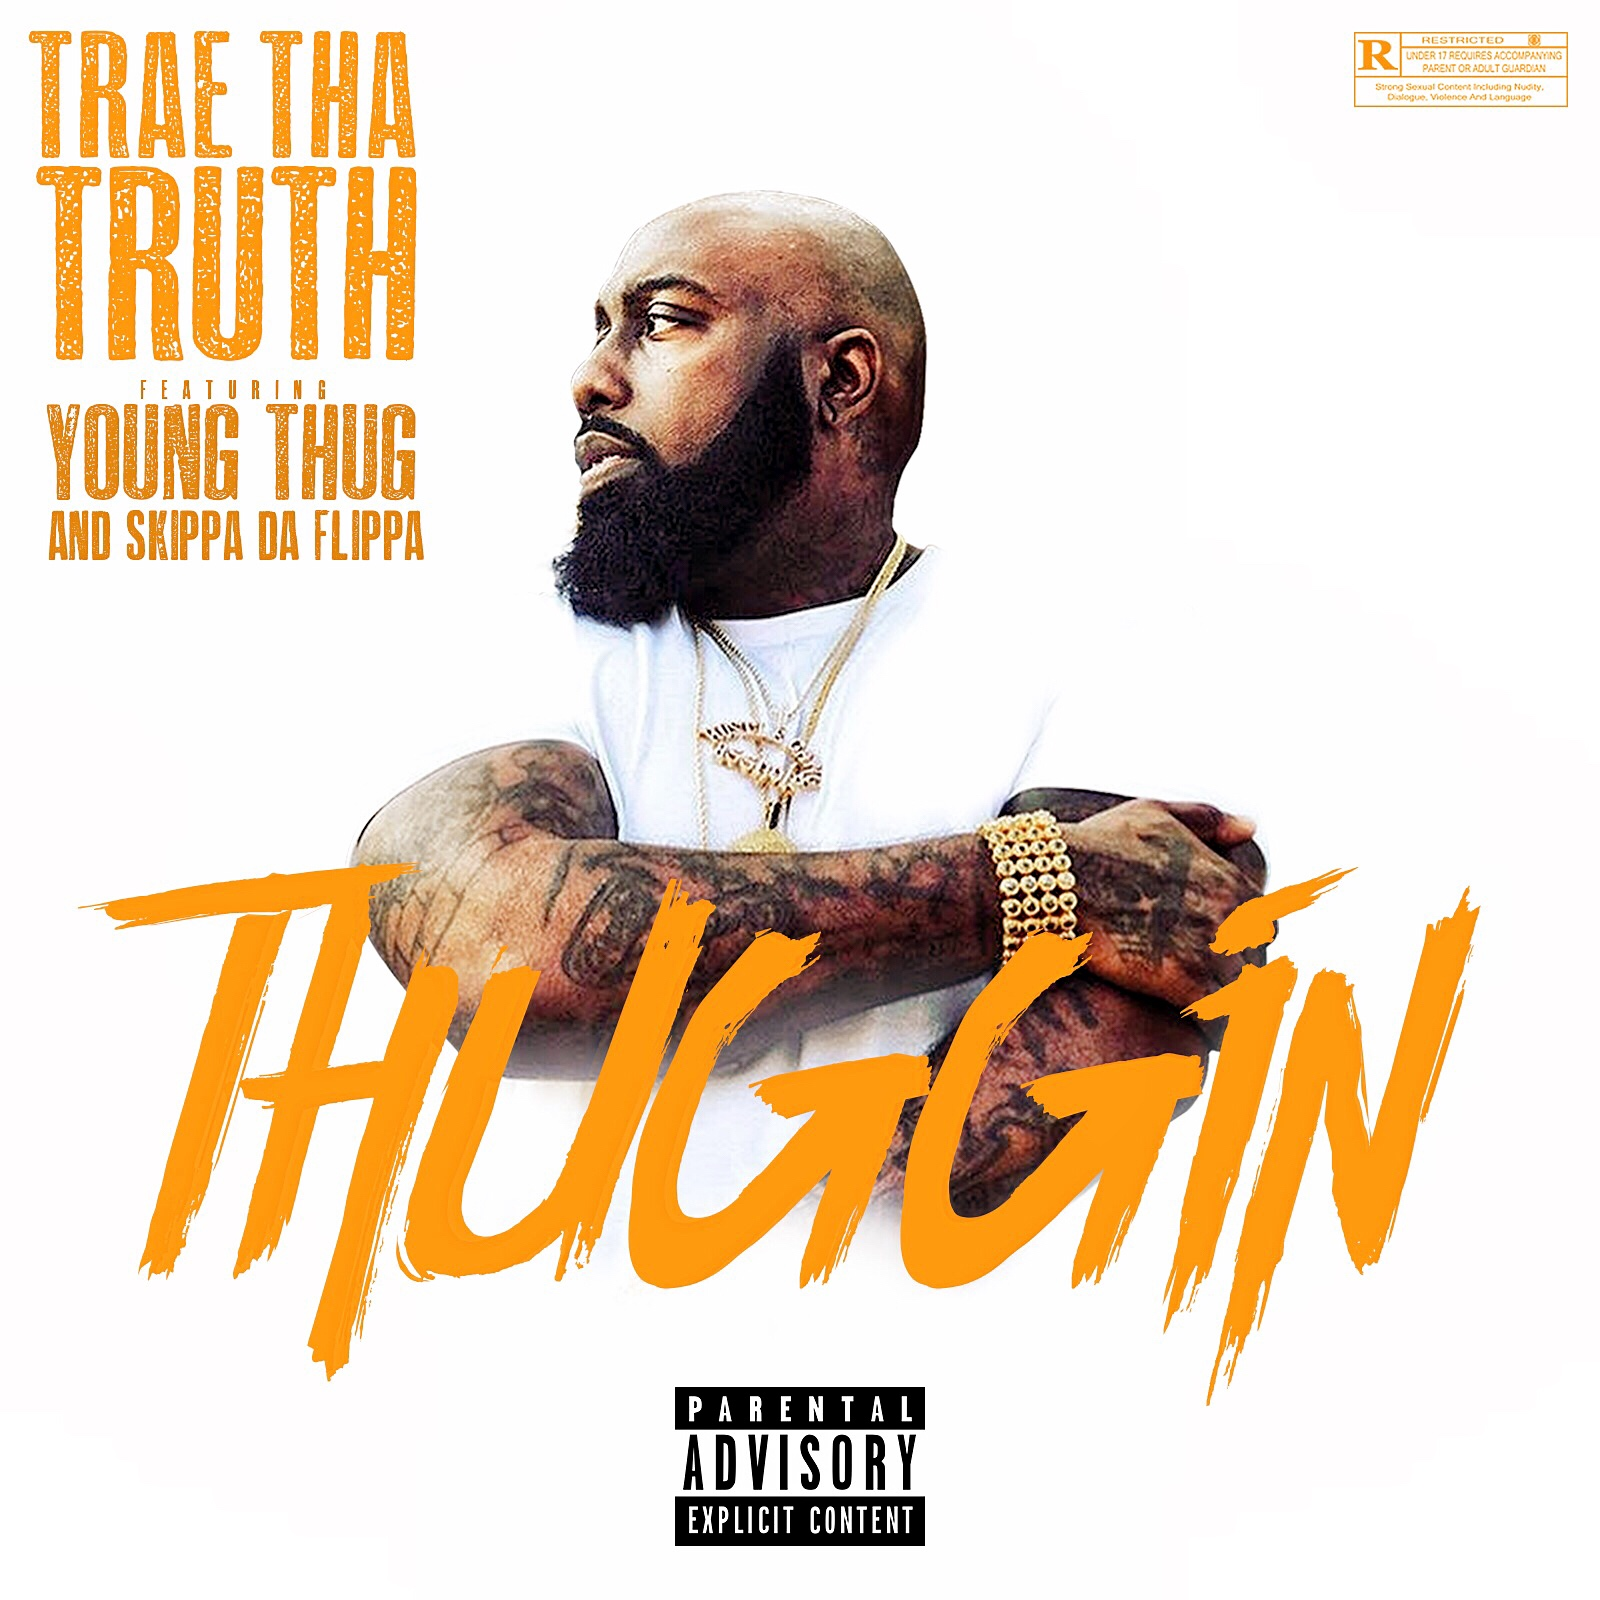 "Trae Tha Truth Recruits Young Thug and Skippa Da Flippa for New Single ""Thuggin'"" [Listen]"